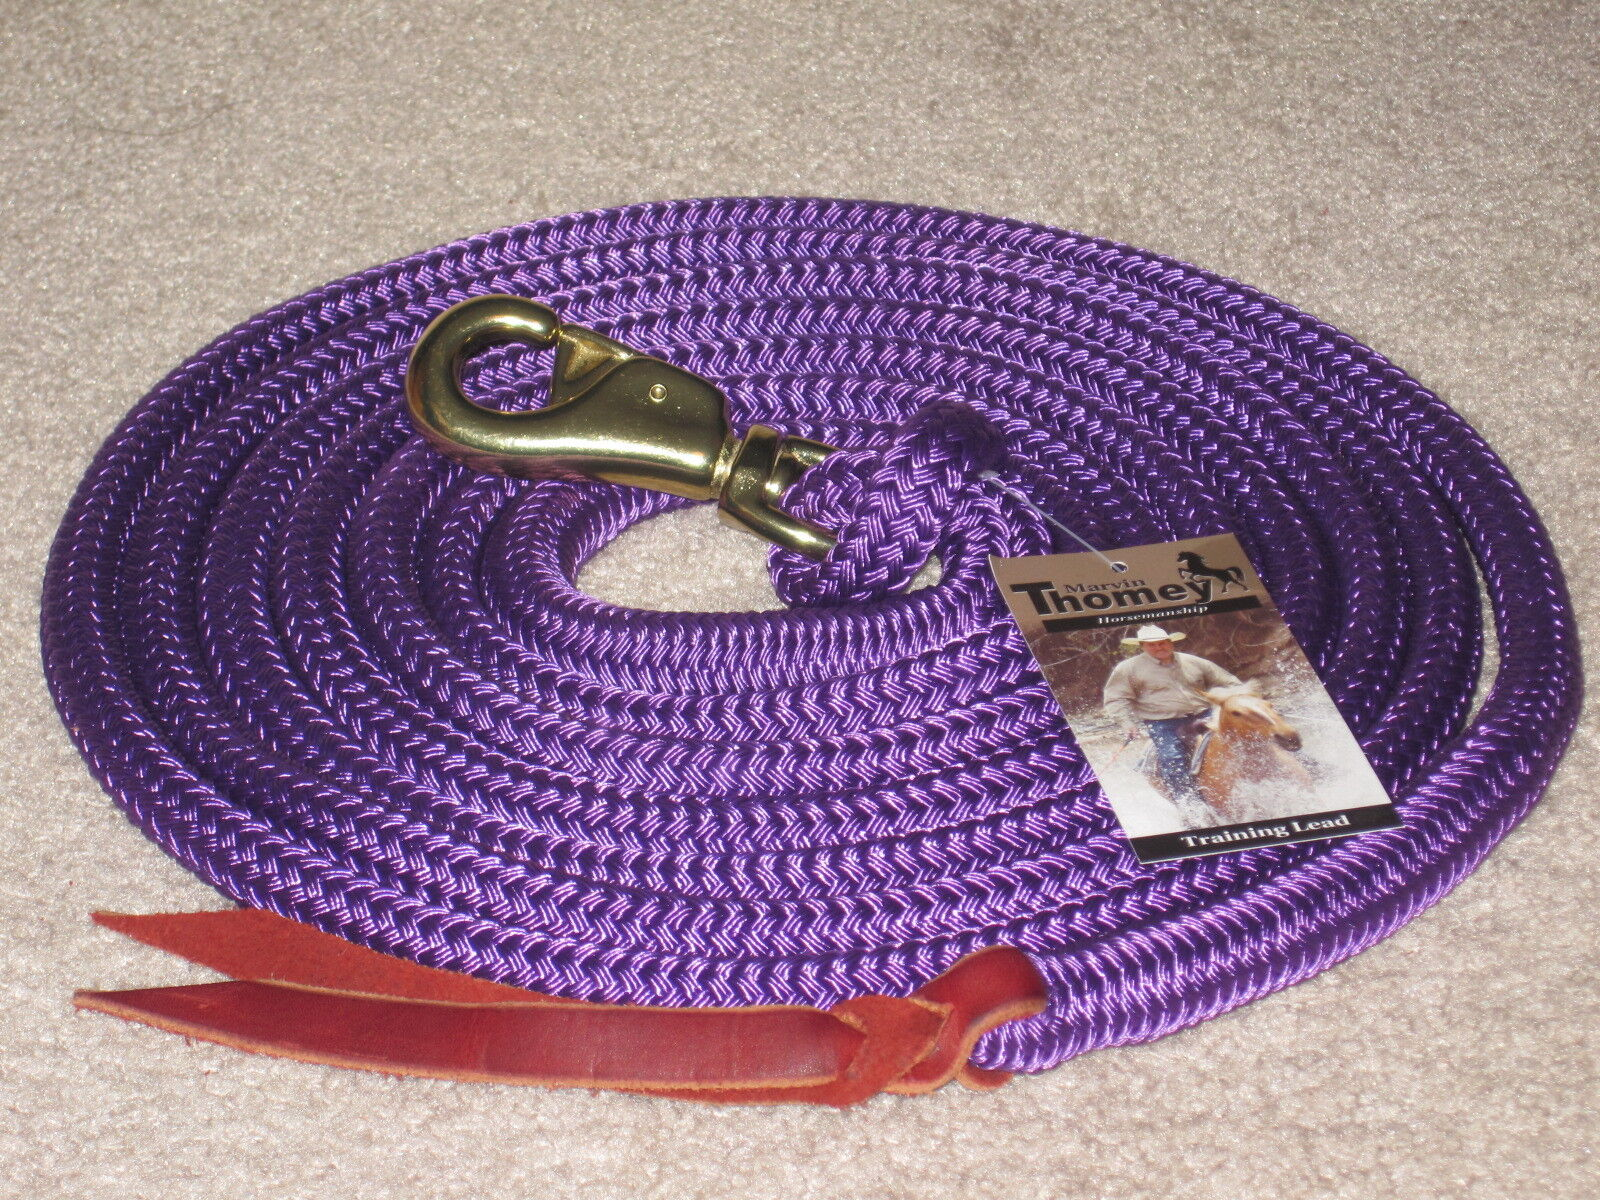 THOMEY NATURAL HORSE TRAINING LEAD ROPE,  14FT.  GREAT FOR GROUNDWORK  PURPLE  top brands sell cheap